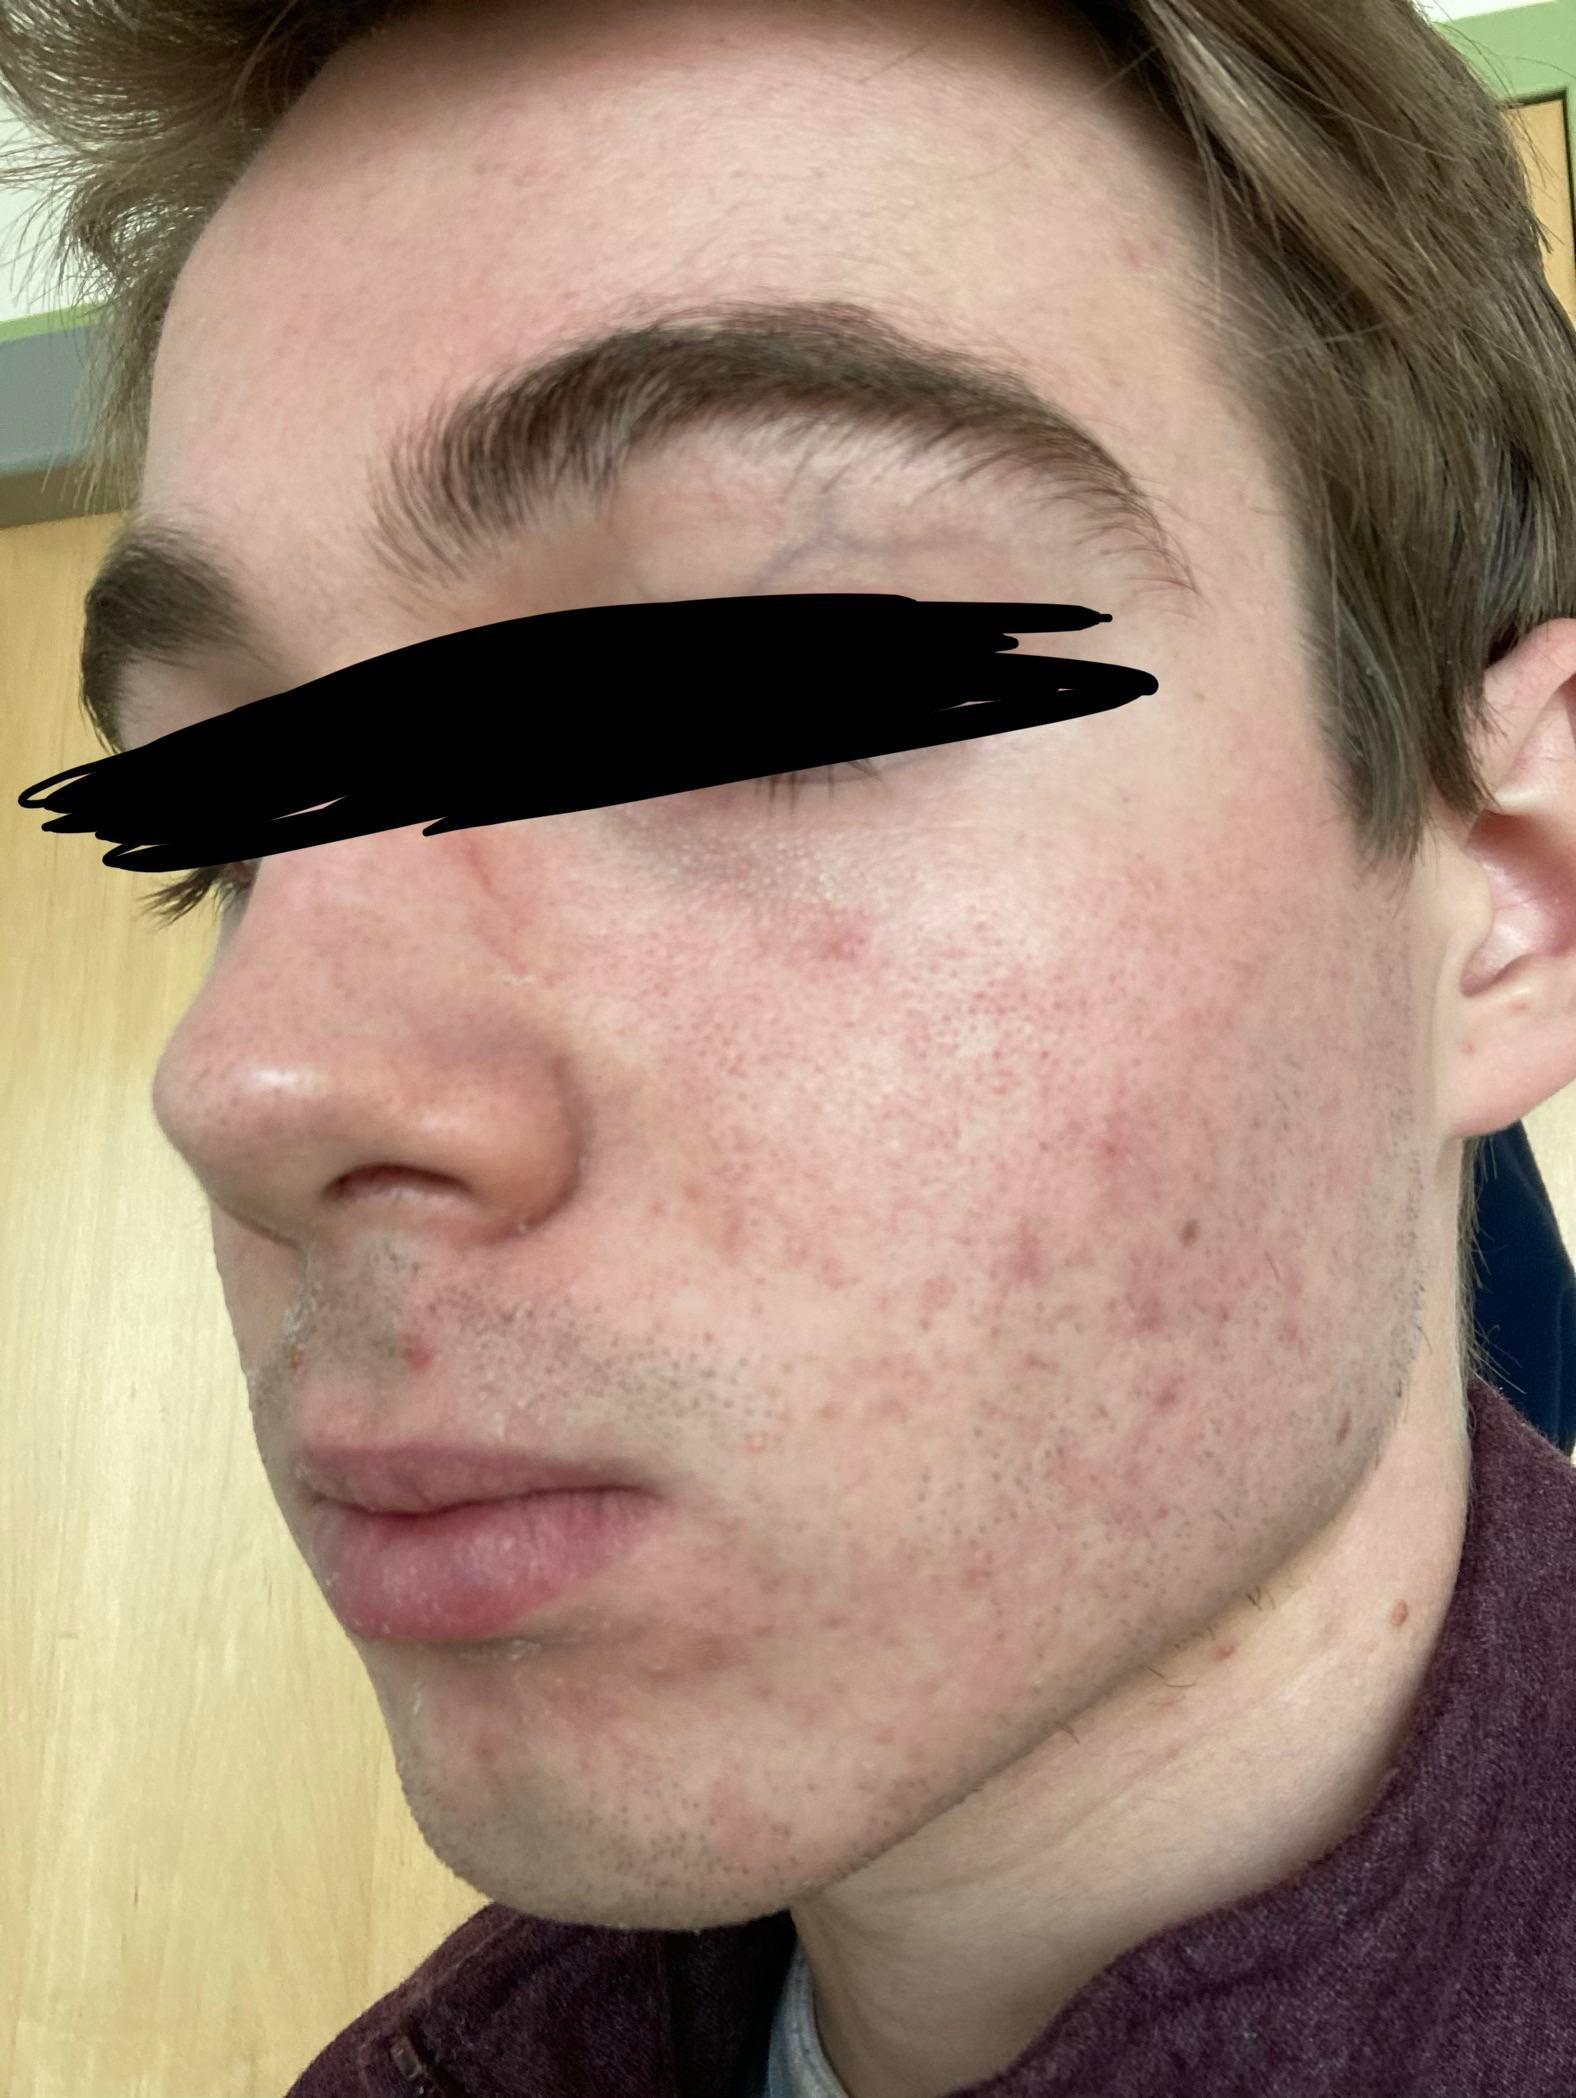 [Skin concerns] I've been dealing with acne for 5 years now and recently it's gotten worse. Could use any suggestions you have